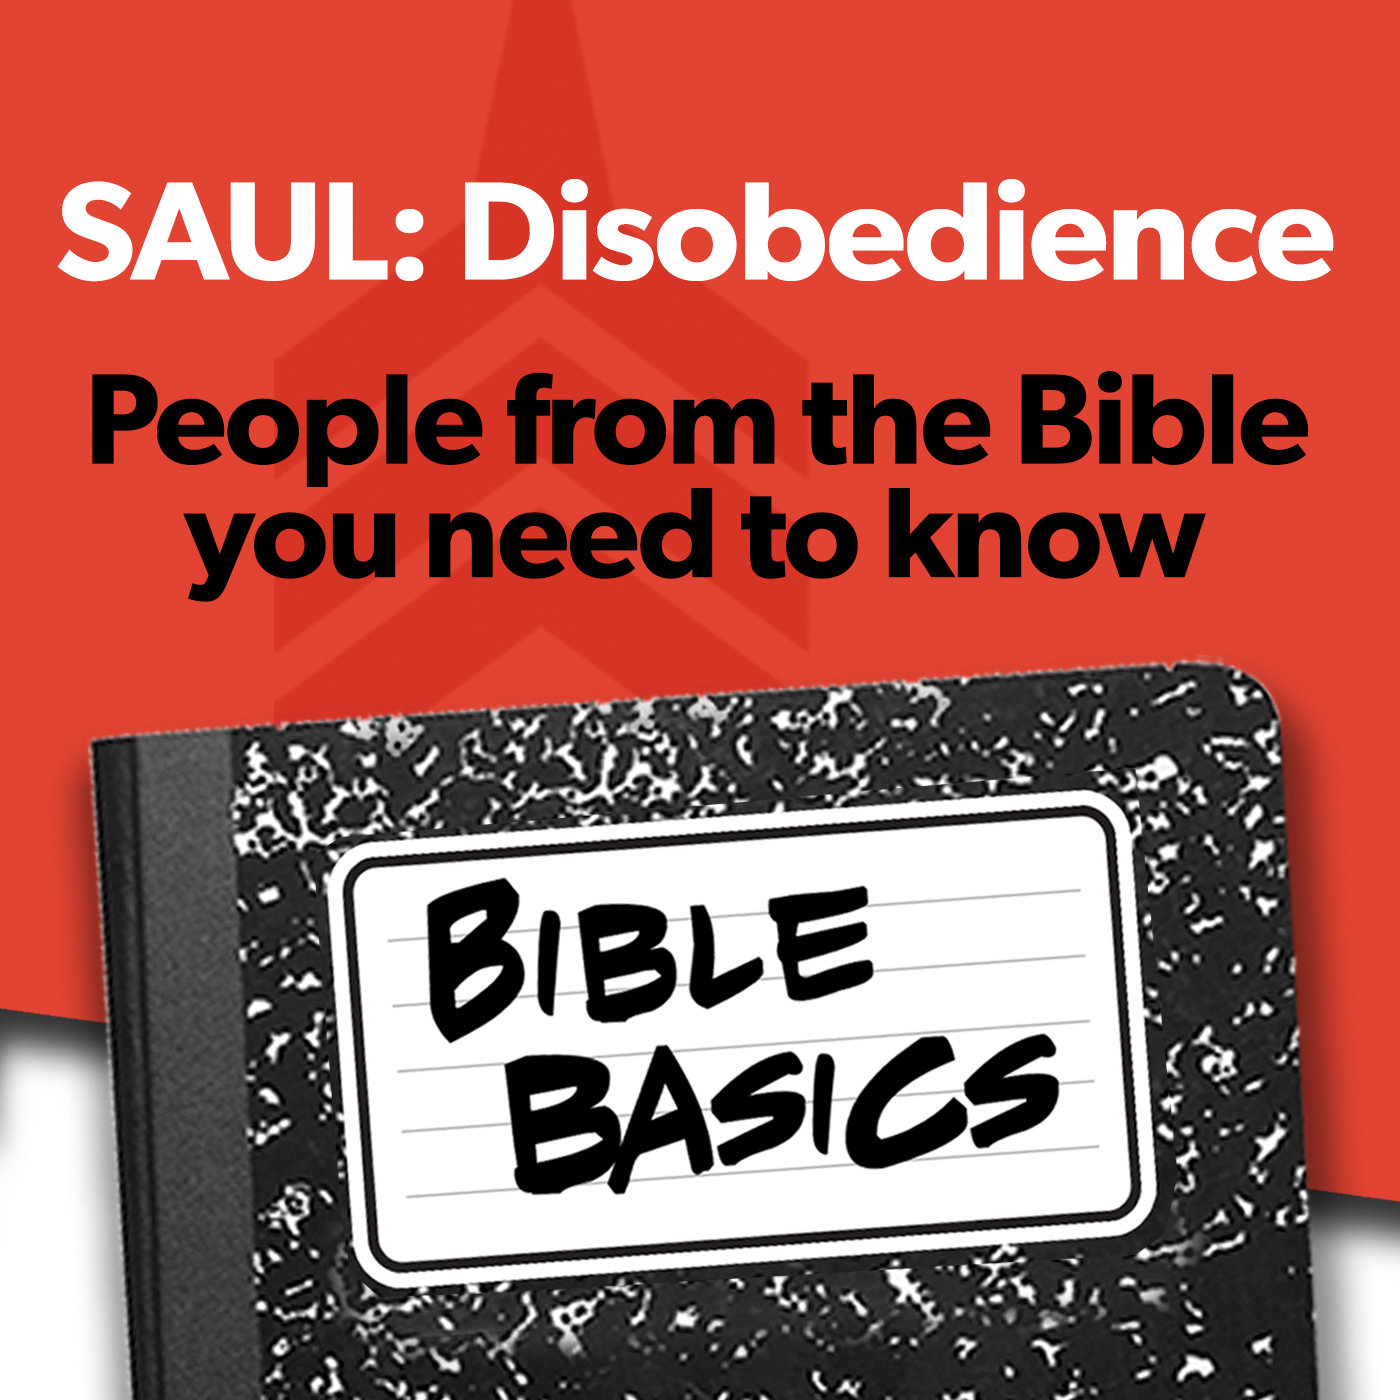 Bible Basics_05_SAUL DISOBEDIENCE Basics 1400sq.jpg